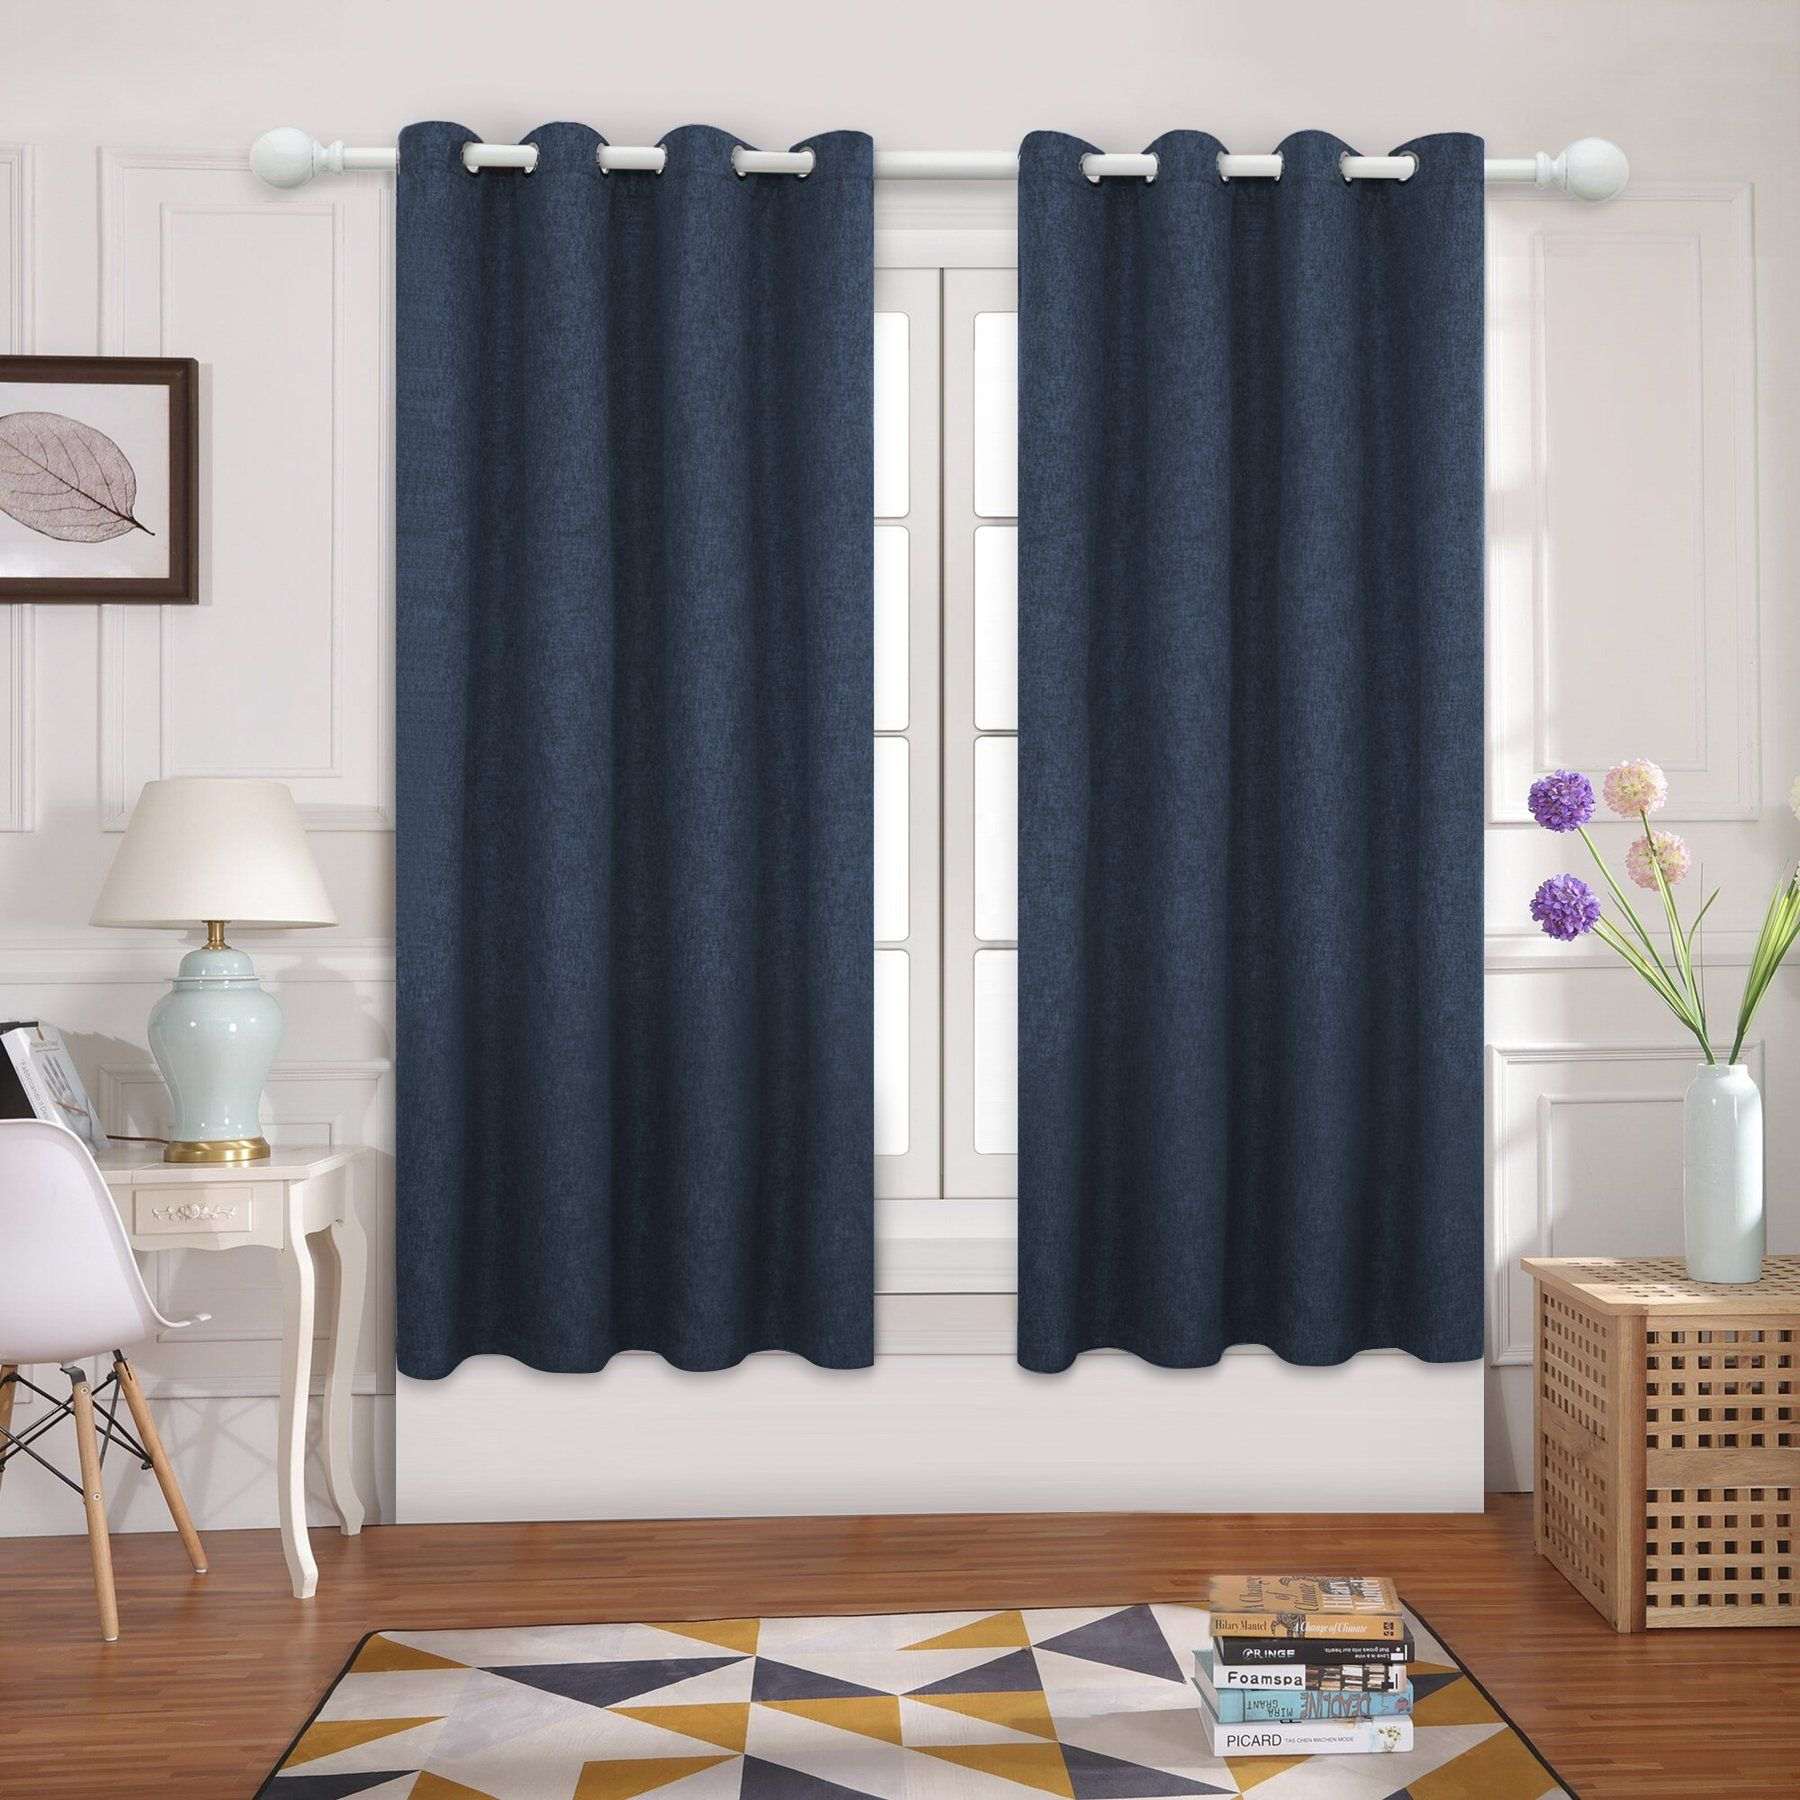 Joywell Blackout Drapes Thermal Insulated Linen Grommet Window